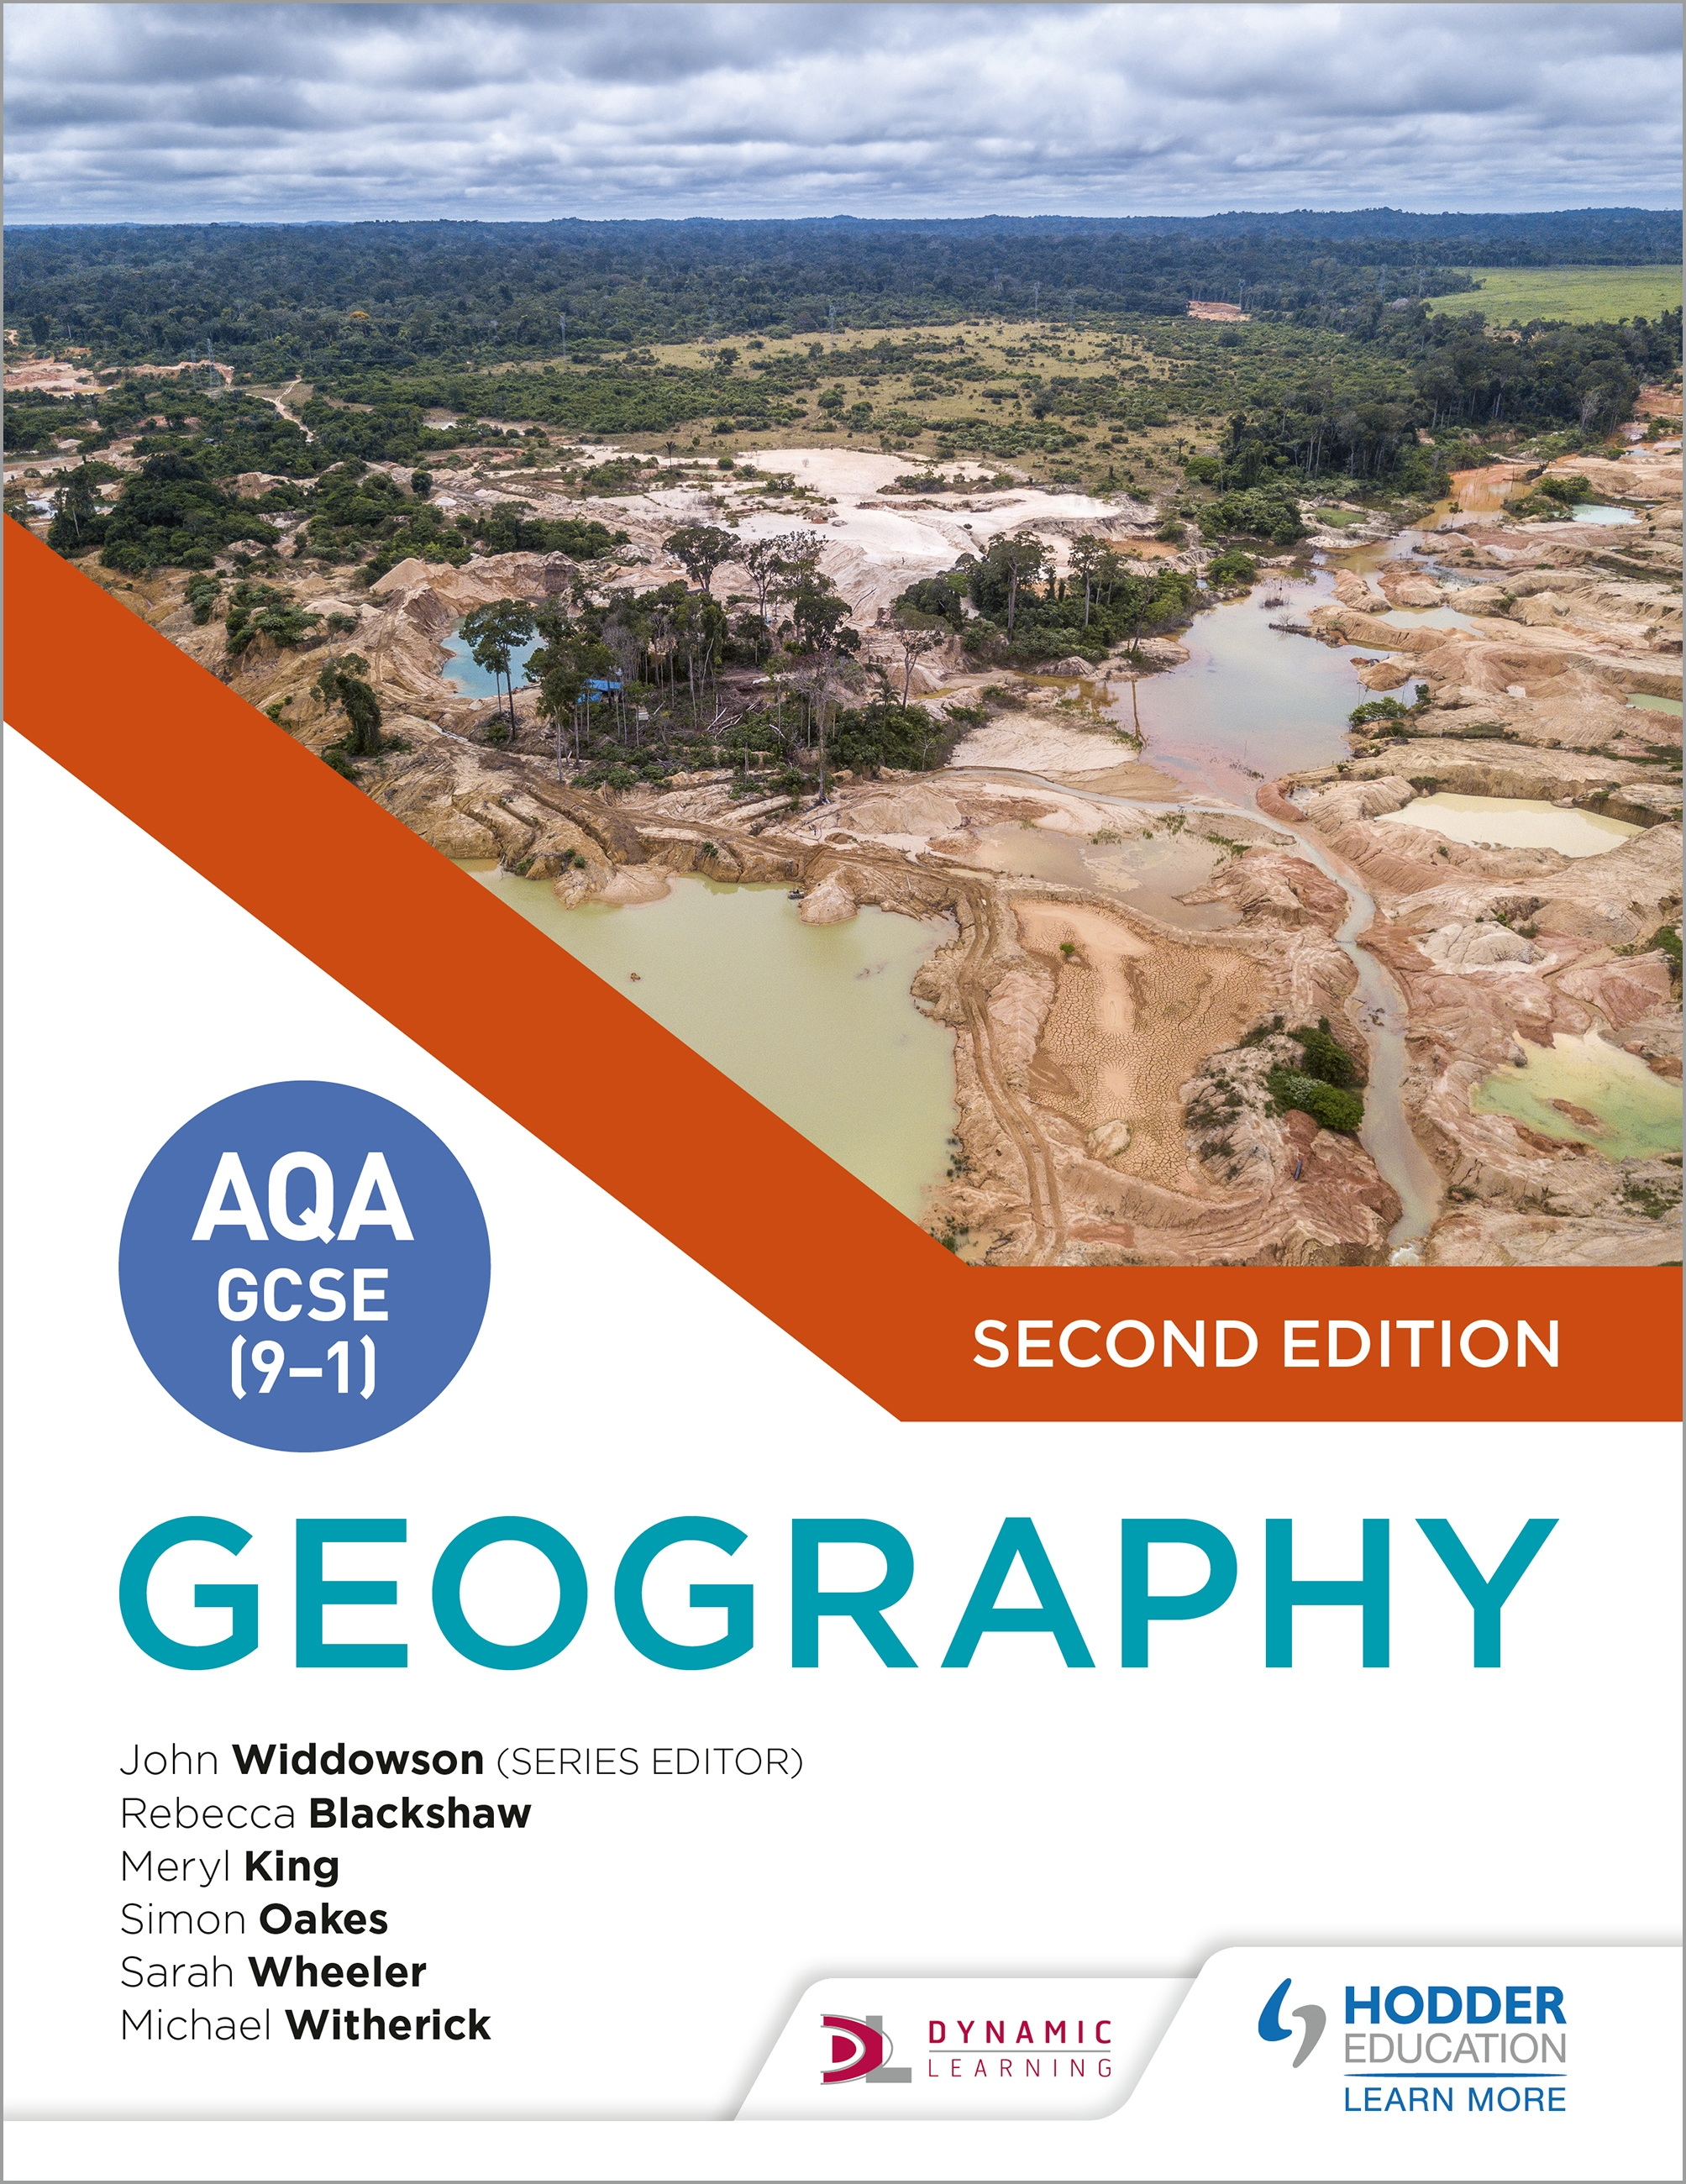 AQA GCSE (9-1) Geography Second Edition